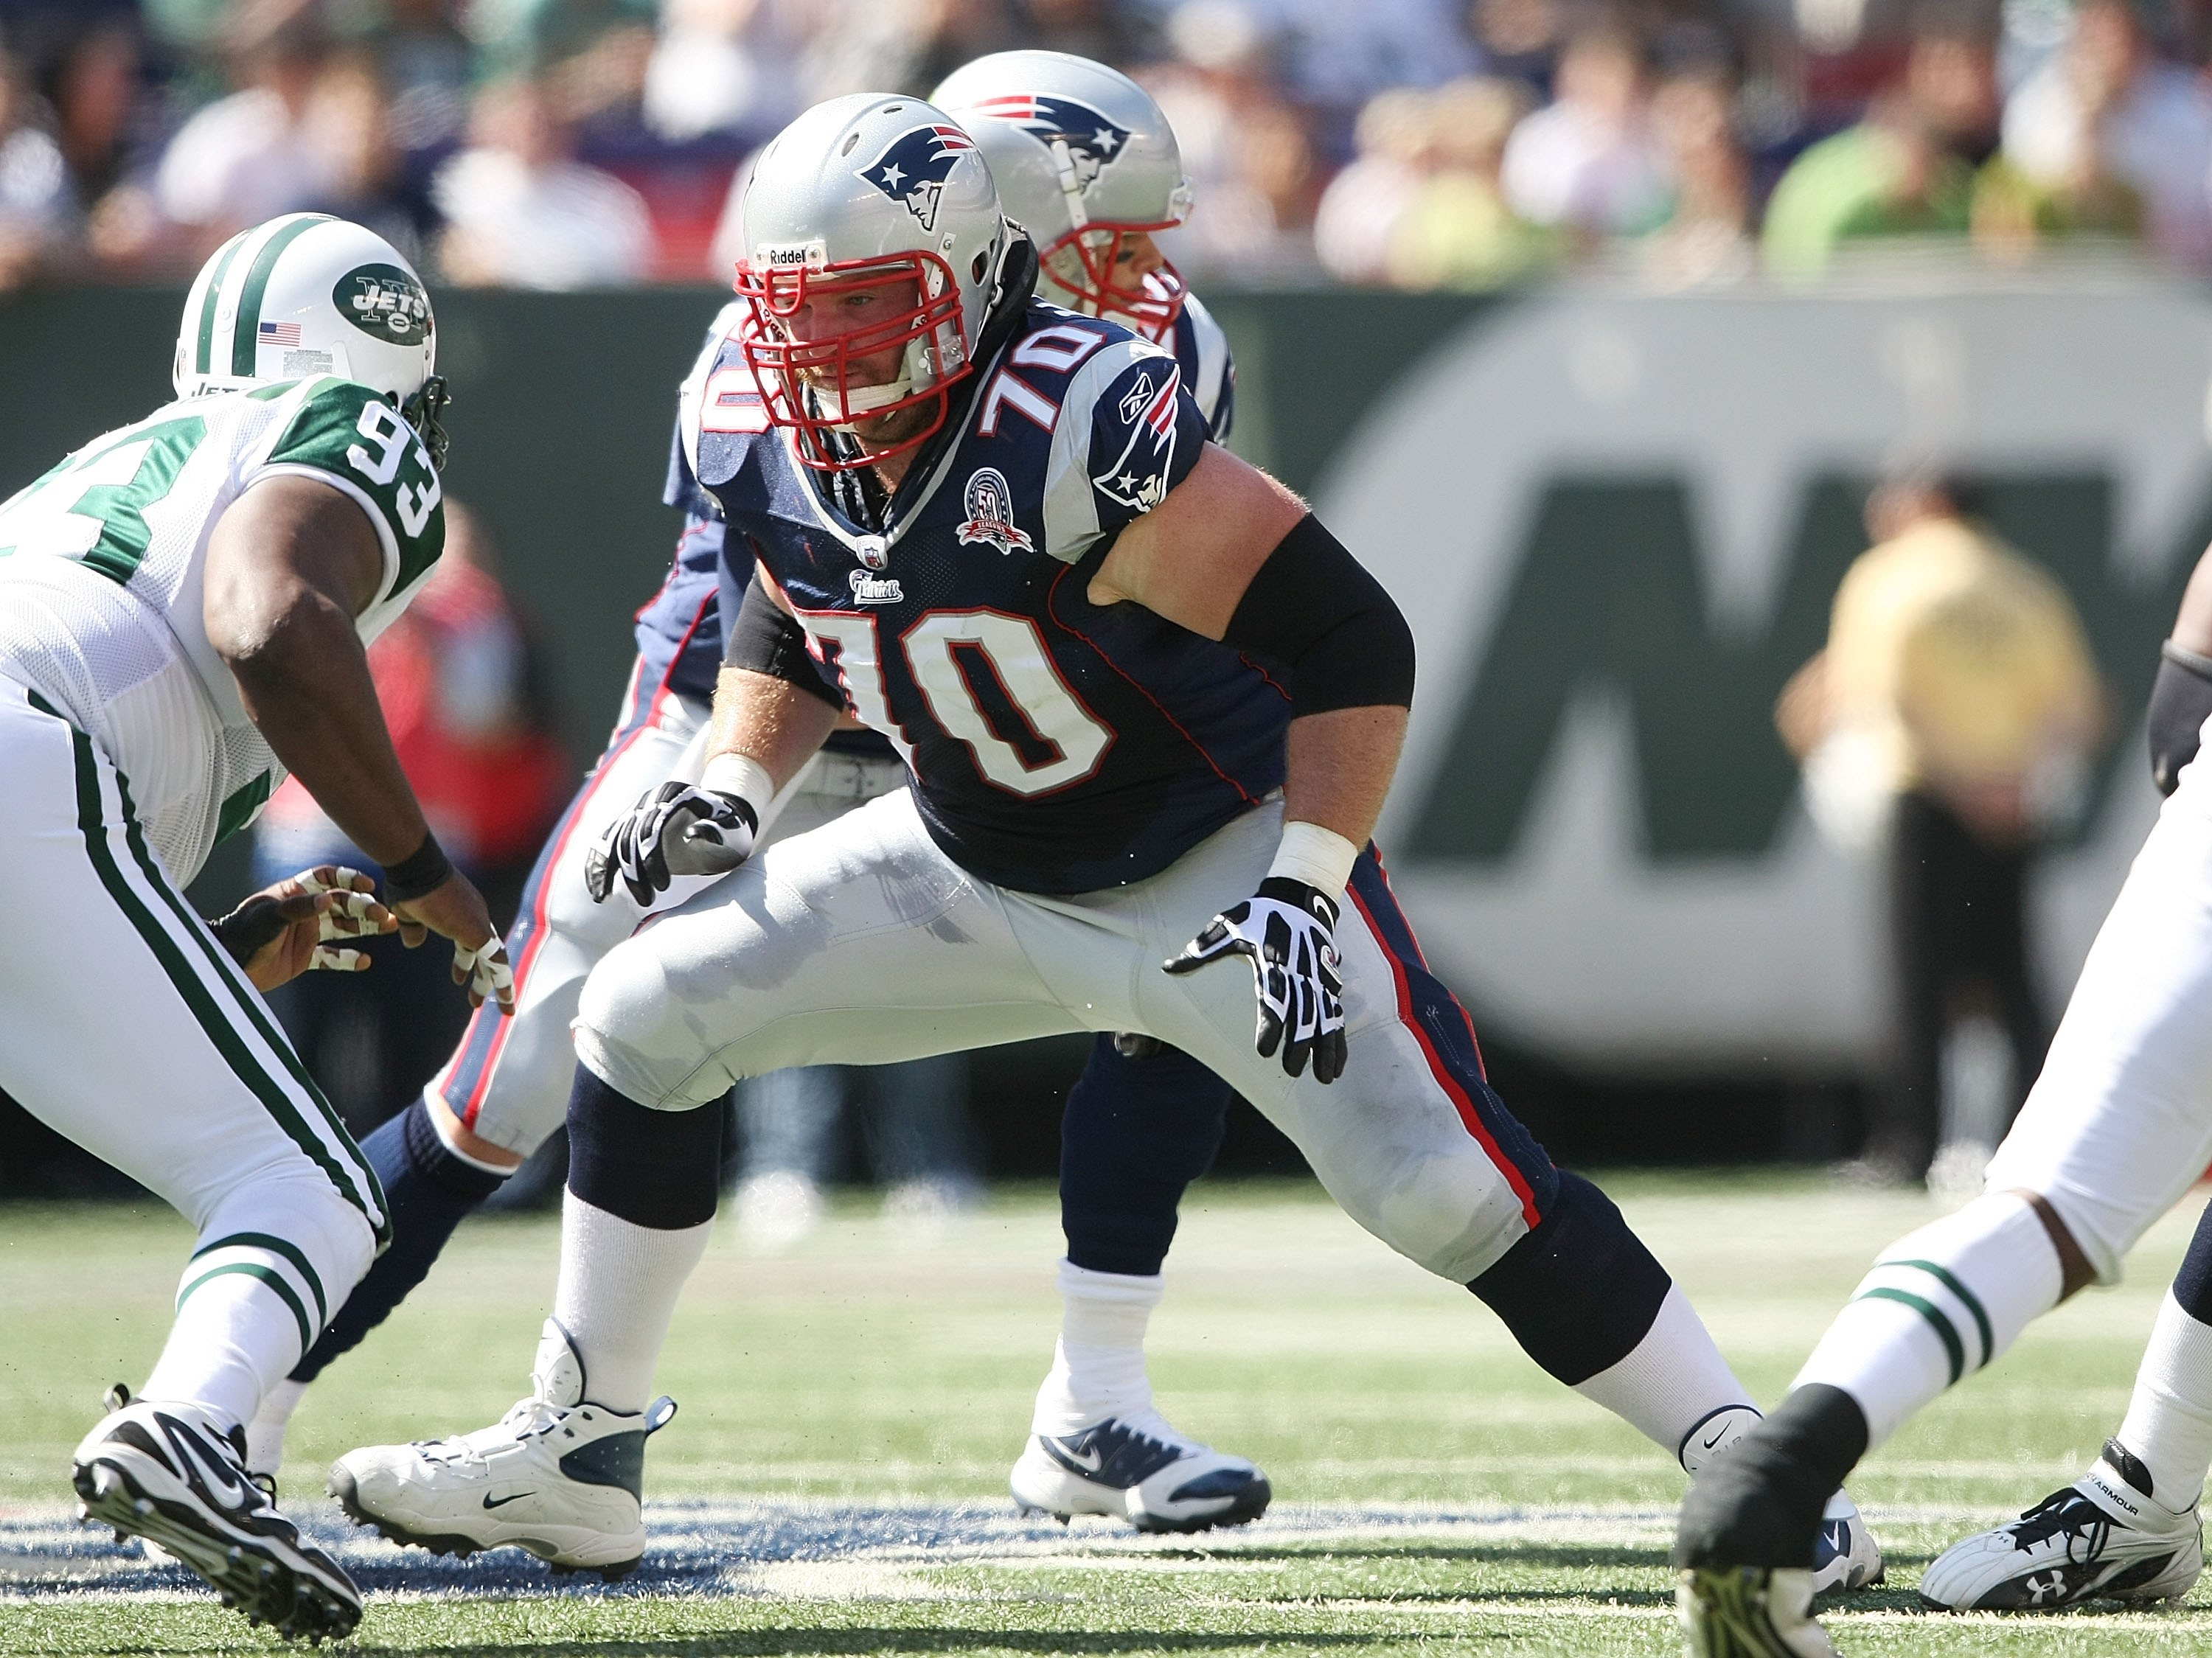 EAST RUTHERFORD, NJ - SEPTEMBER 20:  Logan Mankins #70 of the New England Patriots against the New York Jets at Giants Stadium on September 20, 2009 in East Rutherford, New Jersey.  (Photo by Nick Laham/Getty Images)